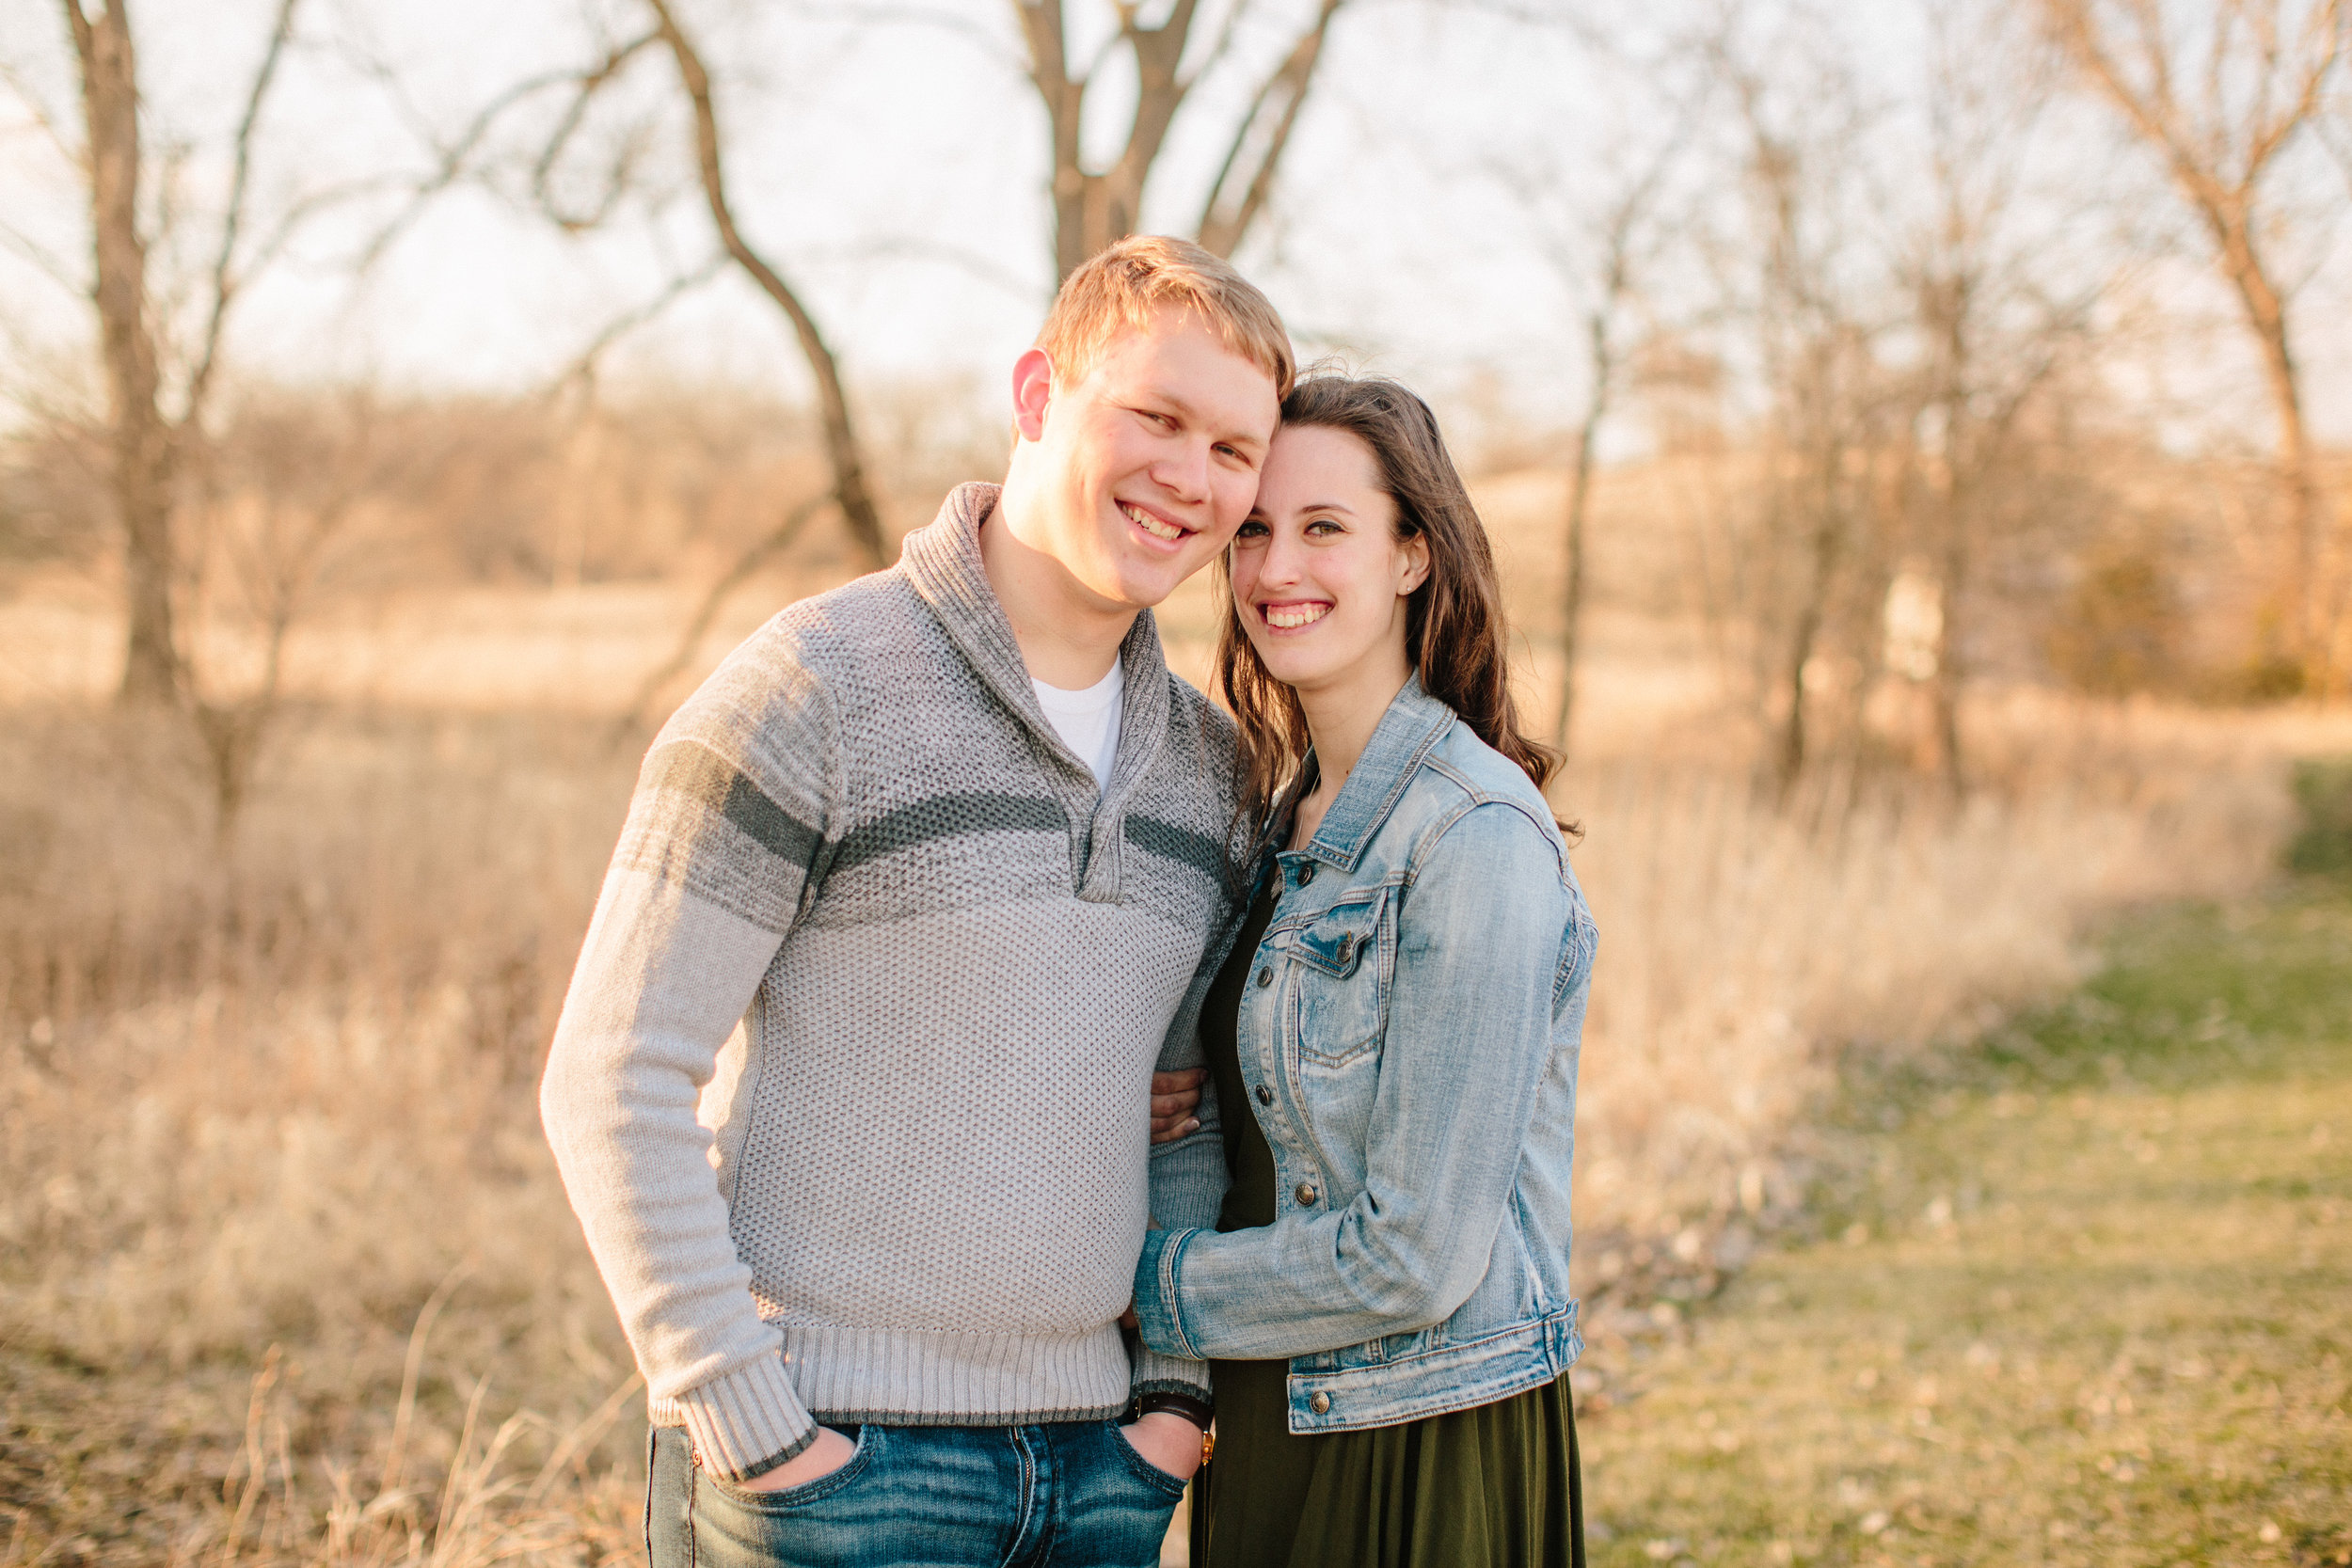 gabby david amelia renee engagement photos in the spring Des Moines Iowa